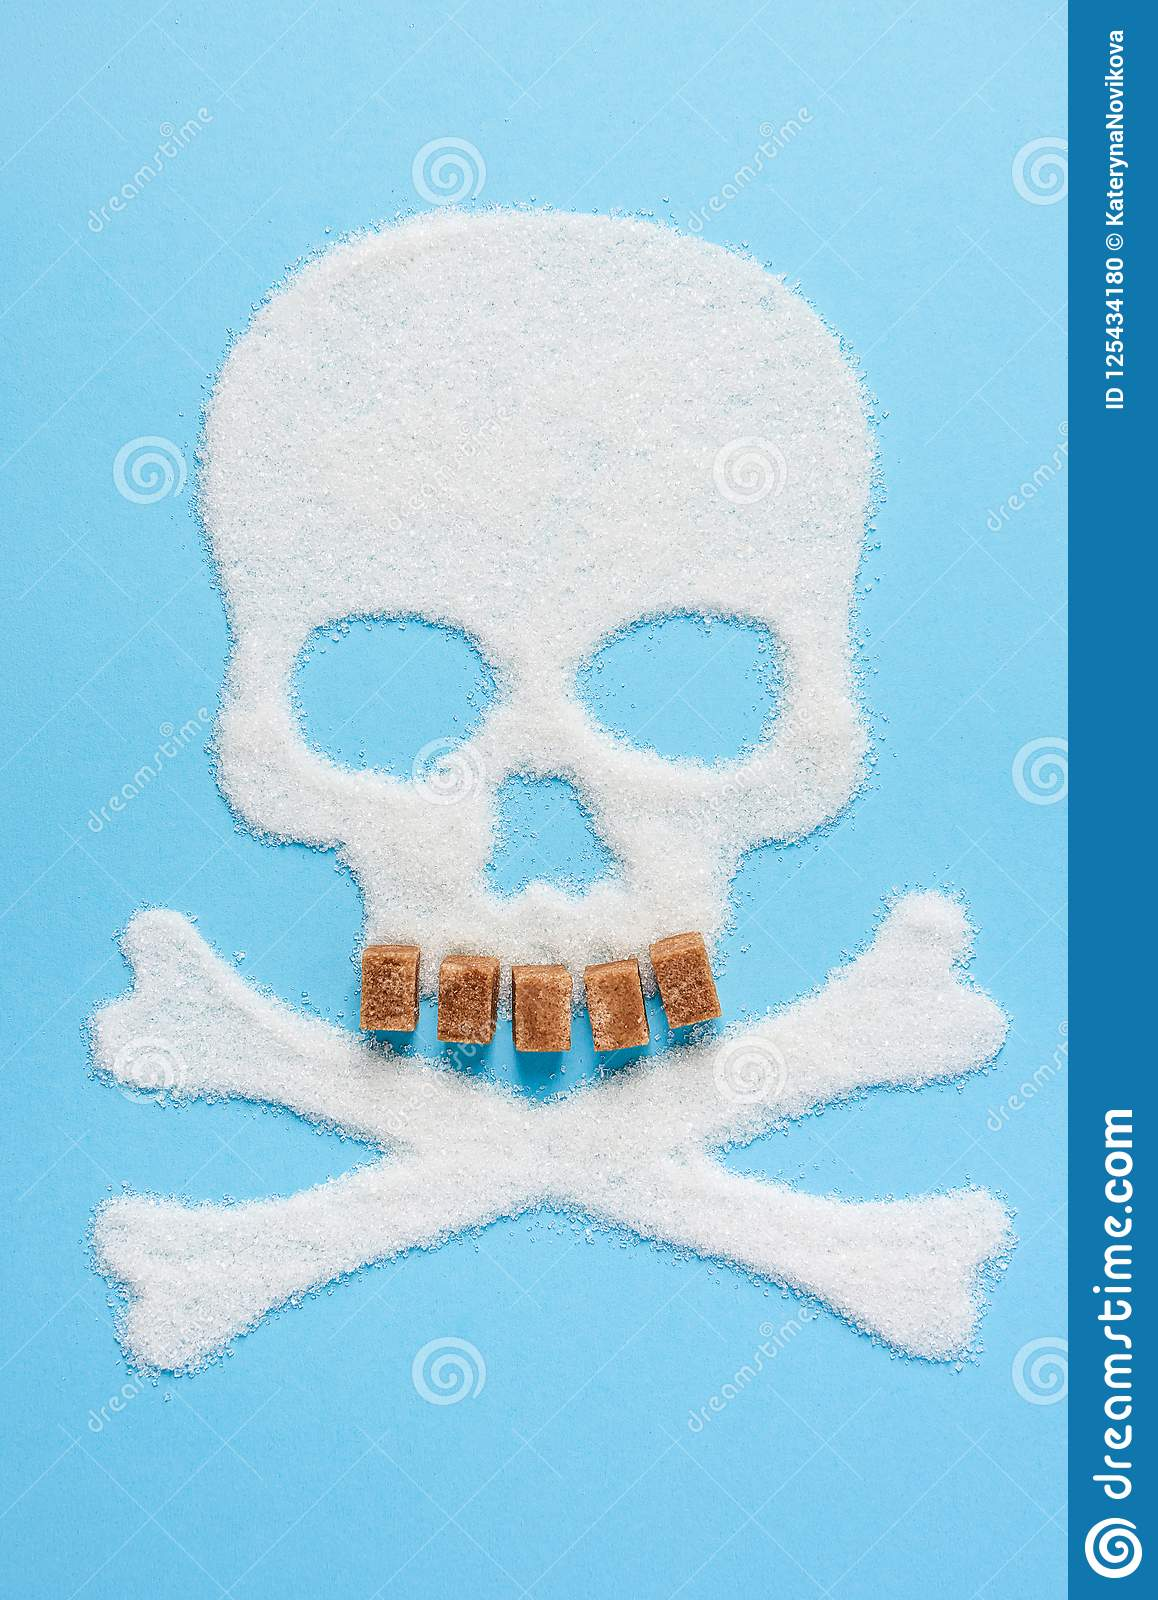 The skull made of sugar on blue blue background. Diabetes concept. Sugar Kills. Suggesting dieting concept. Copy space